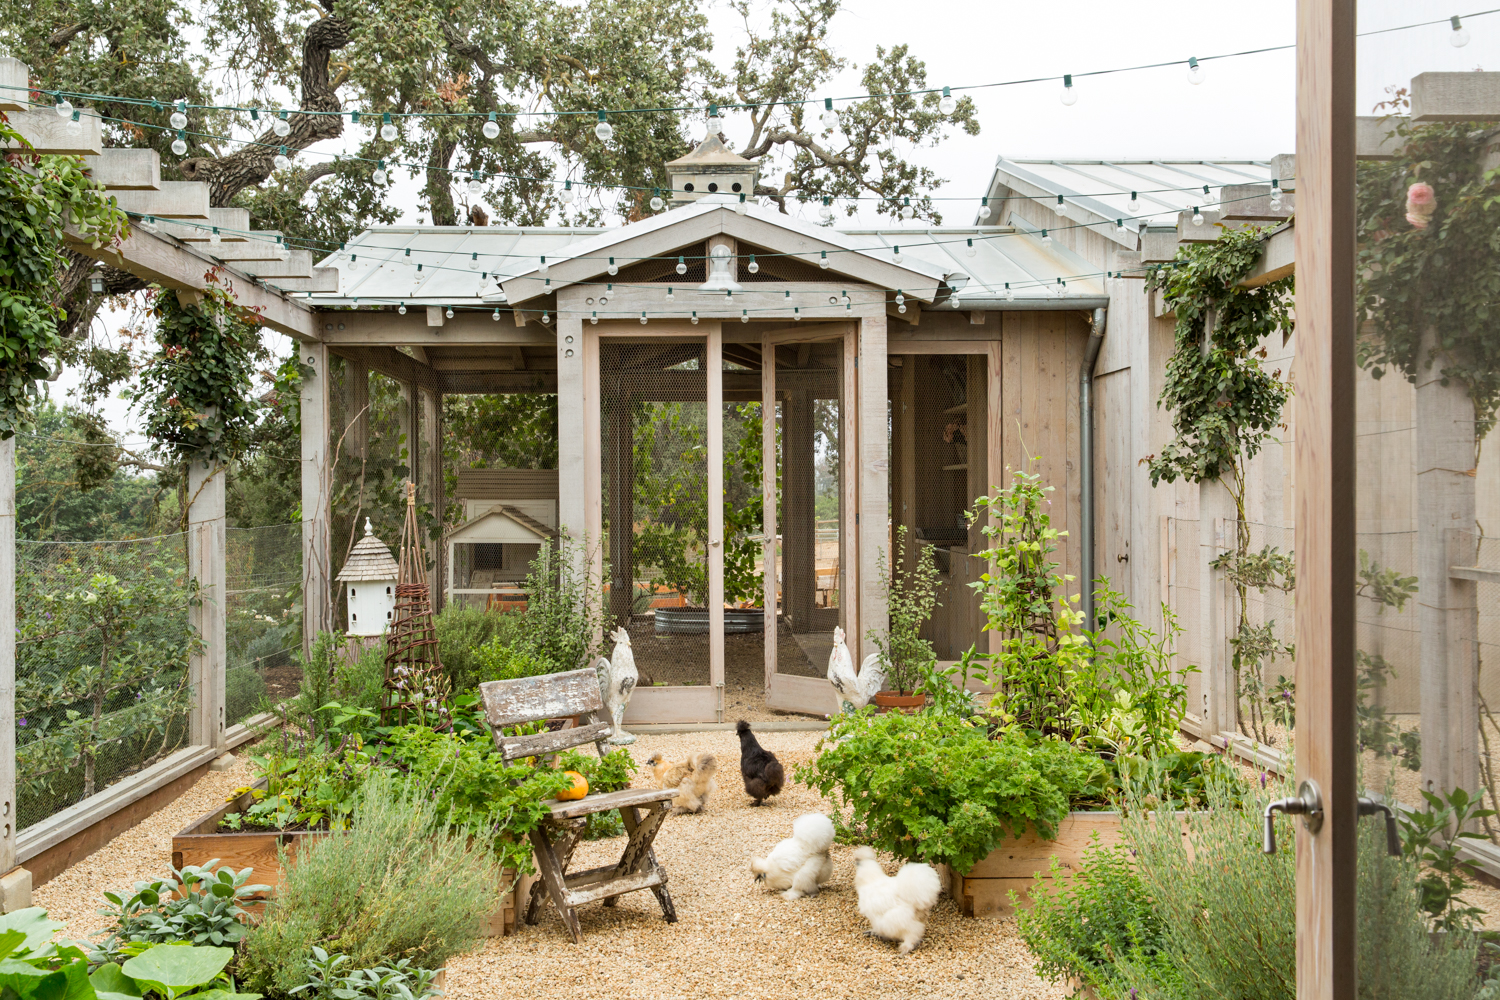 Giannetti_PatinaFarm_ChickenCoop-0172 copy.jpg